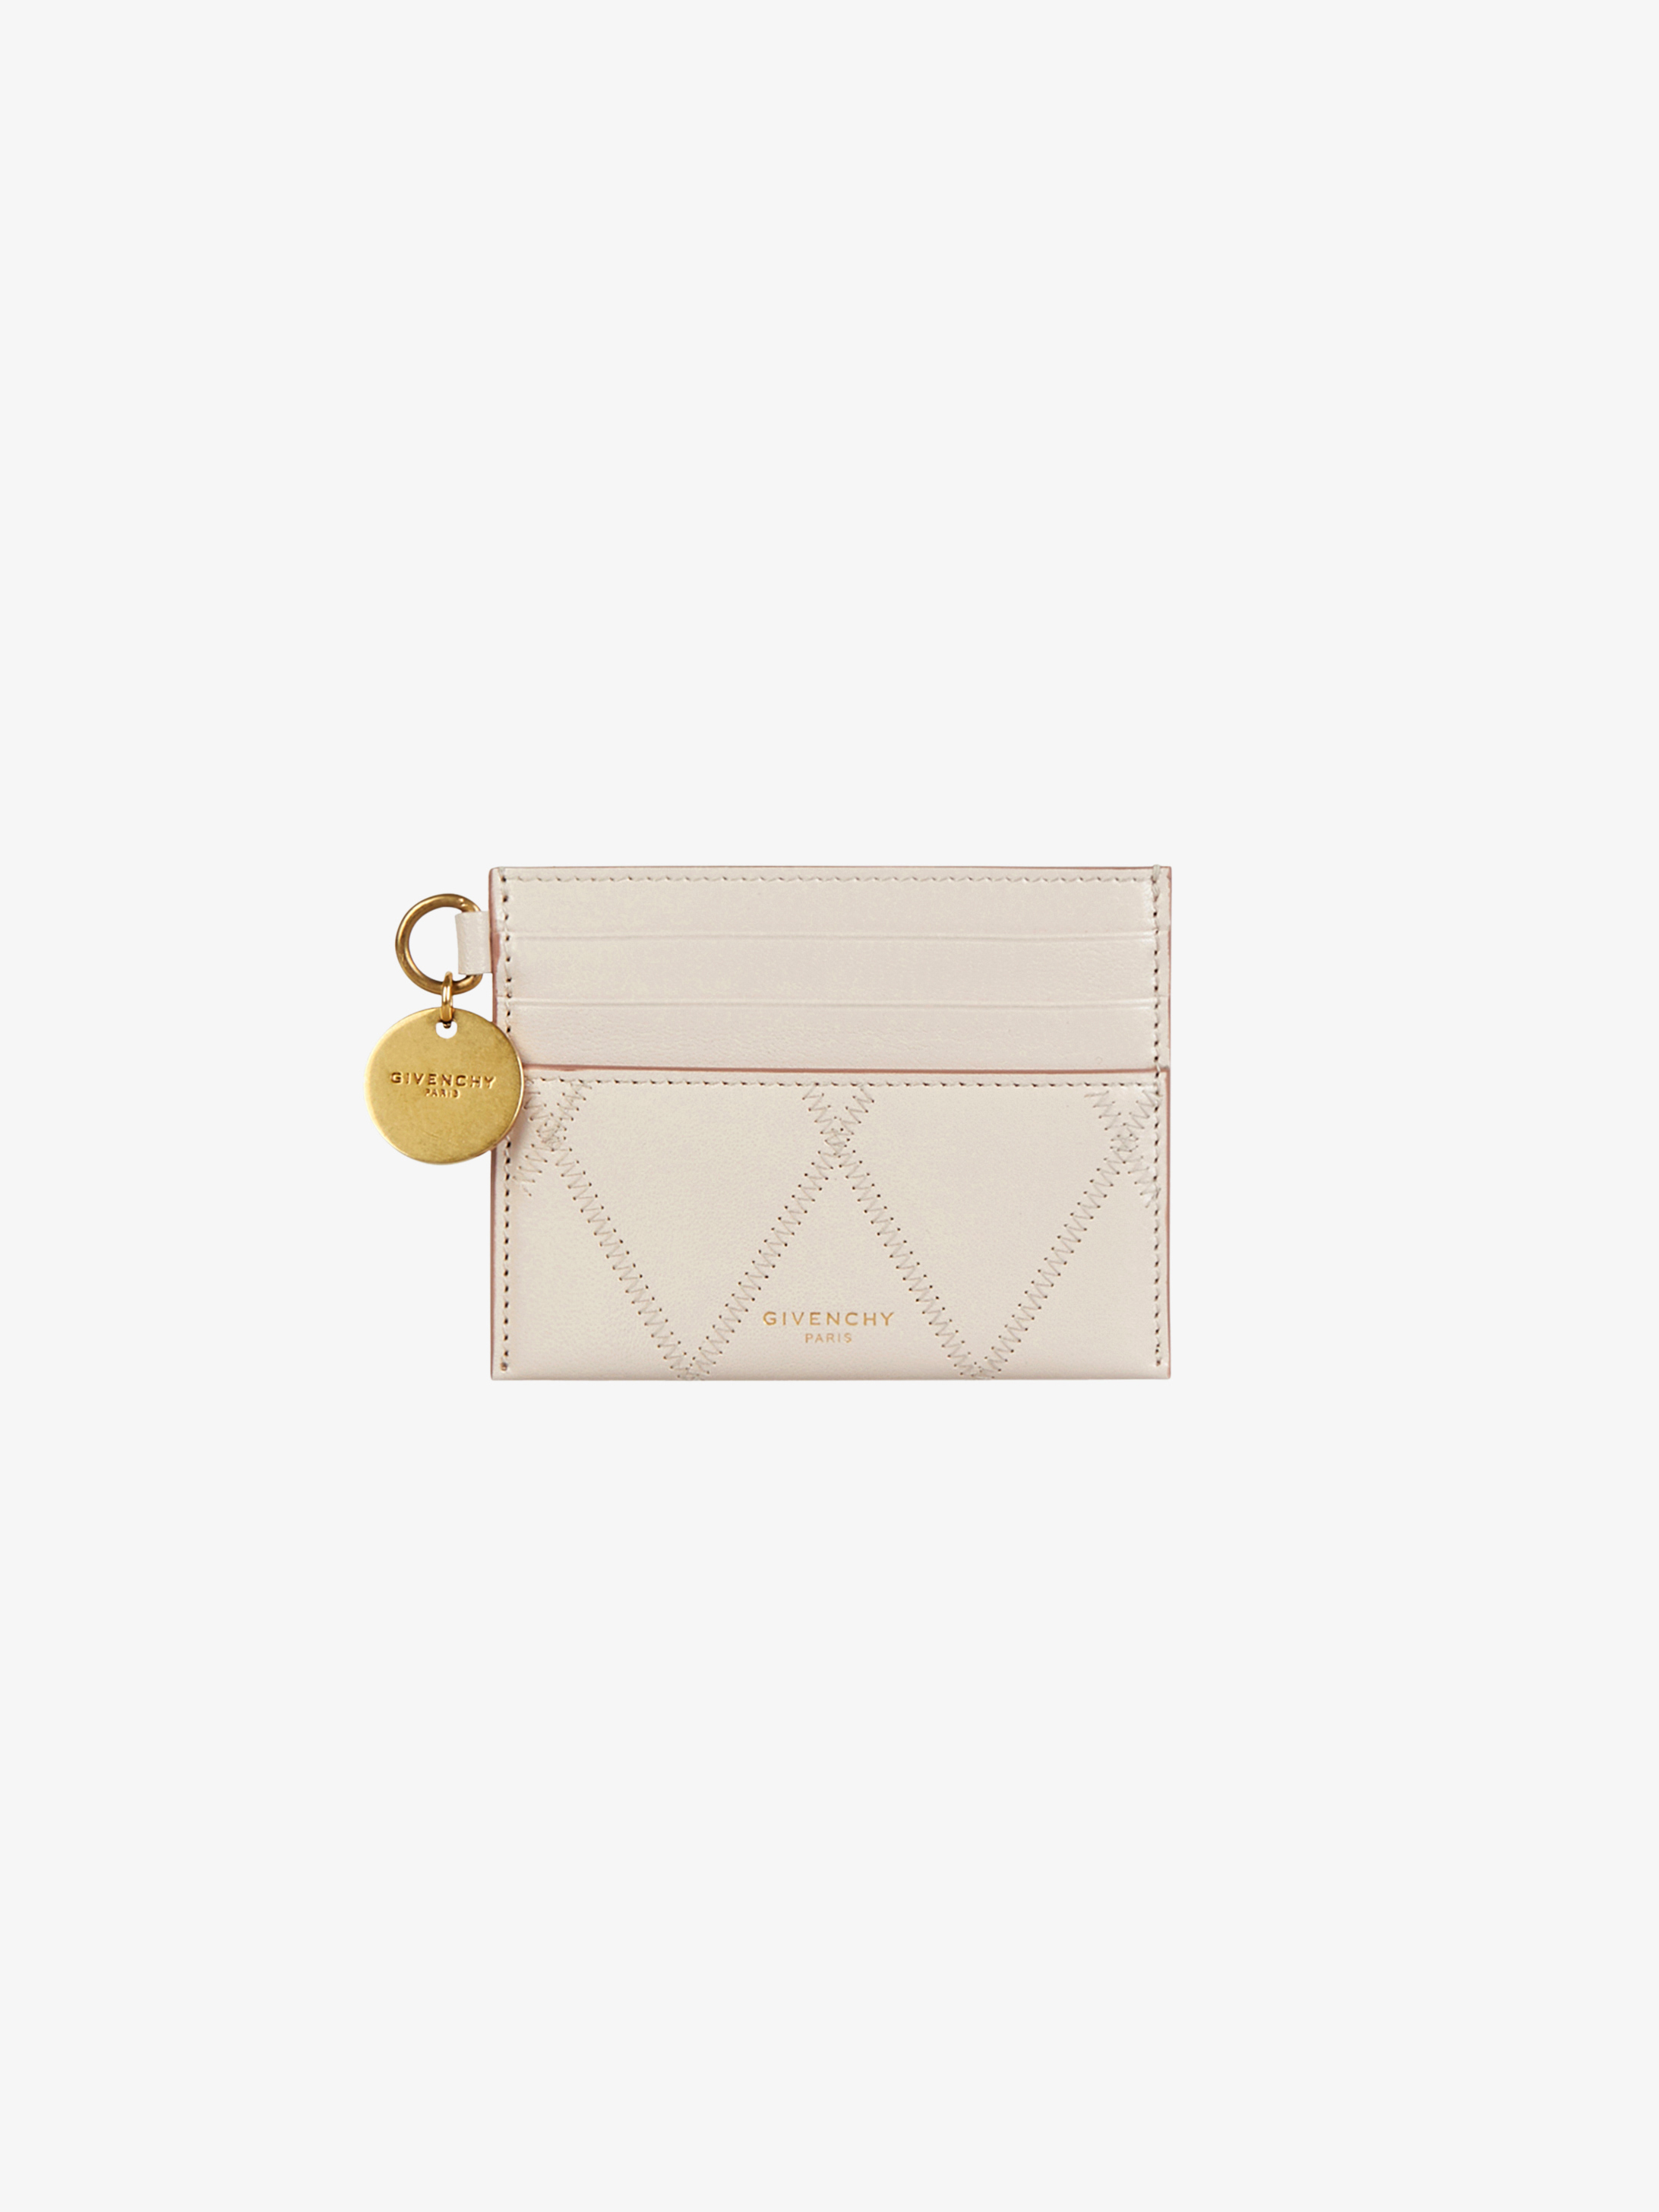 GV3 card holder in diamond quilted leather